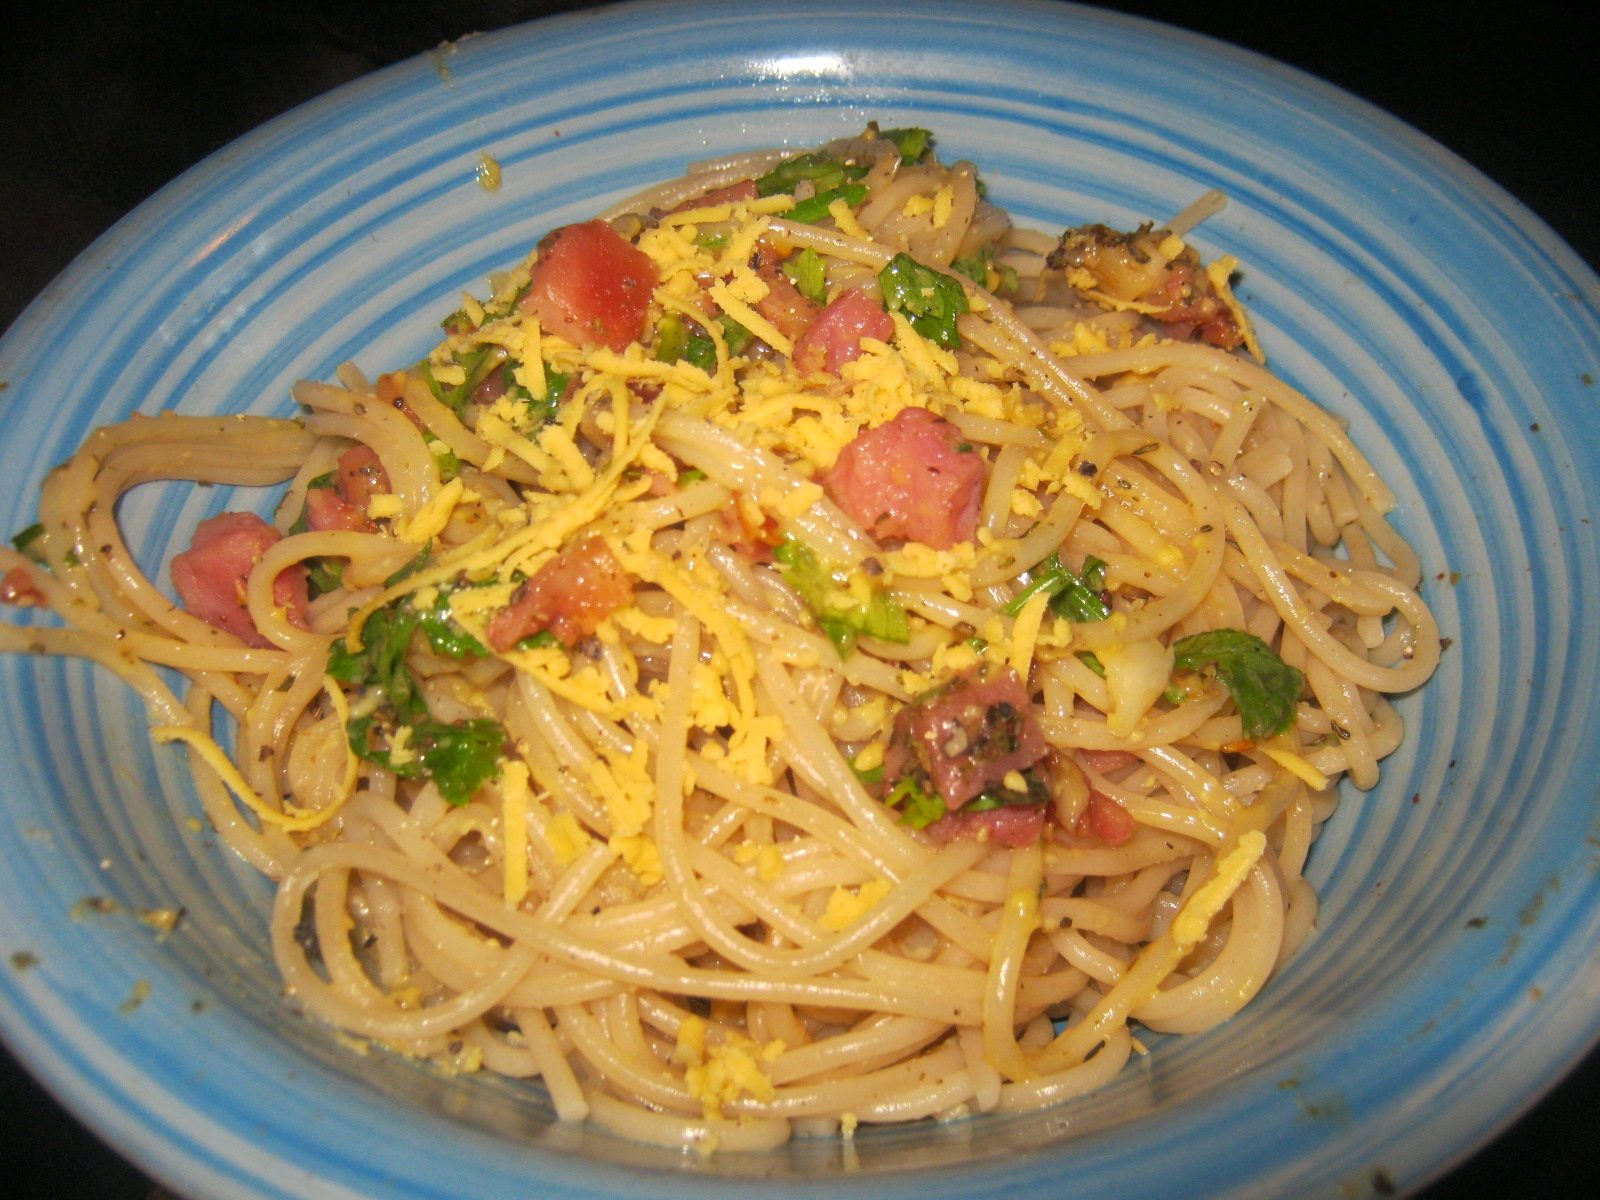 Spaghetti Carbonara in a blue bowl